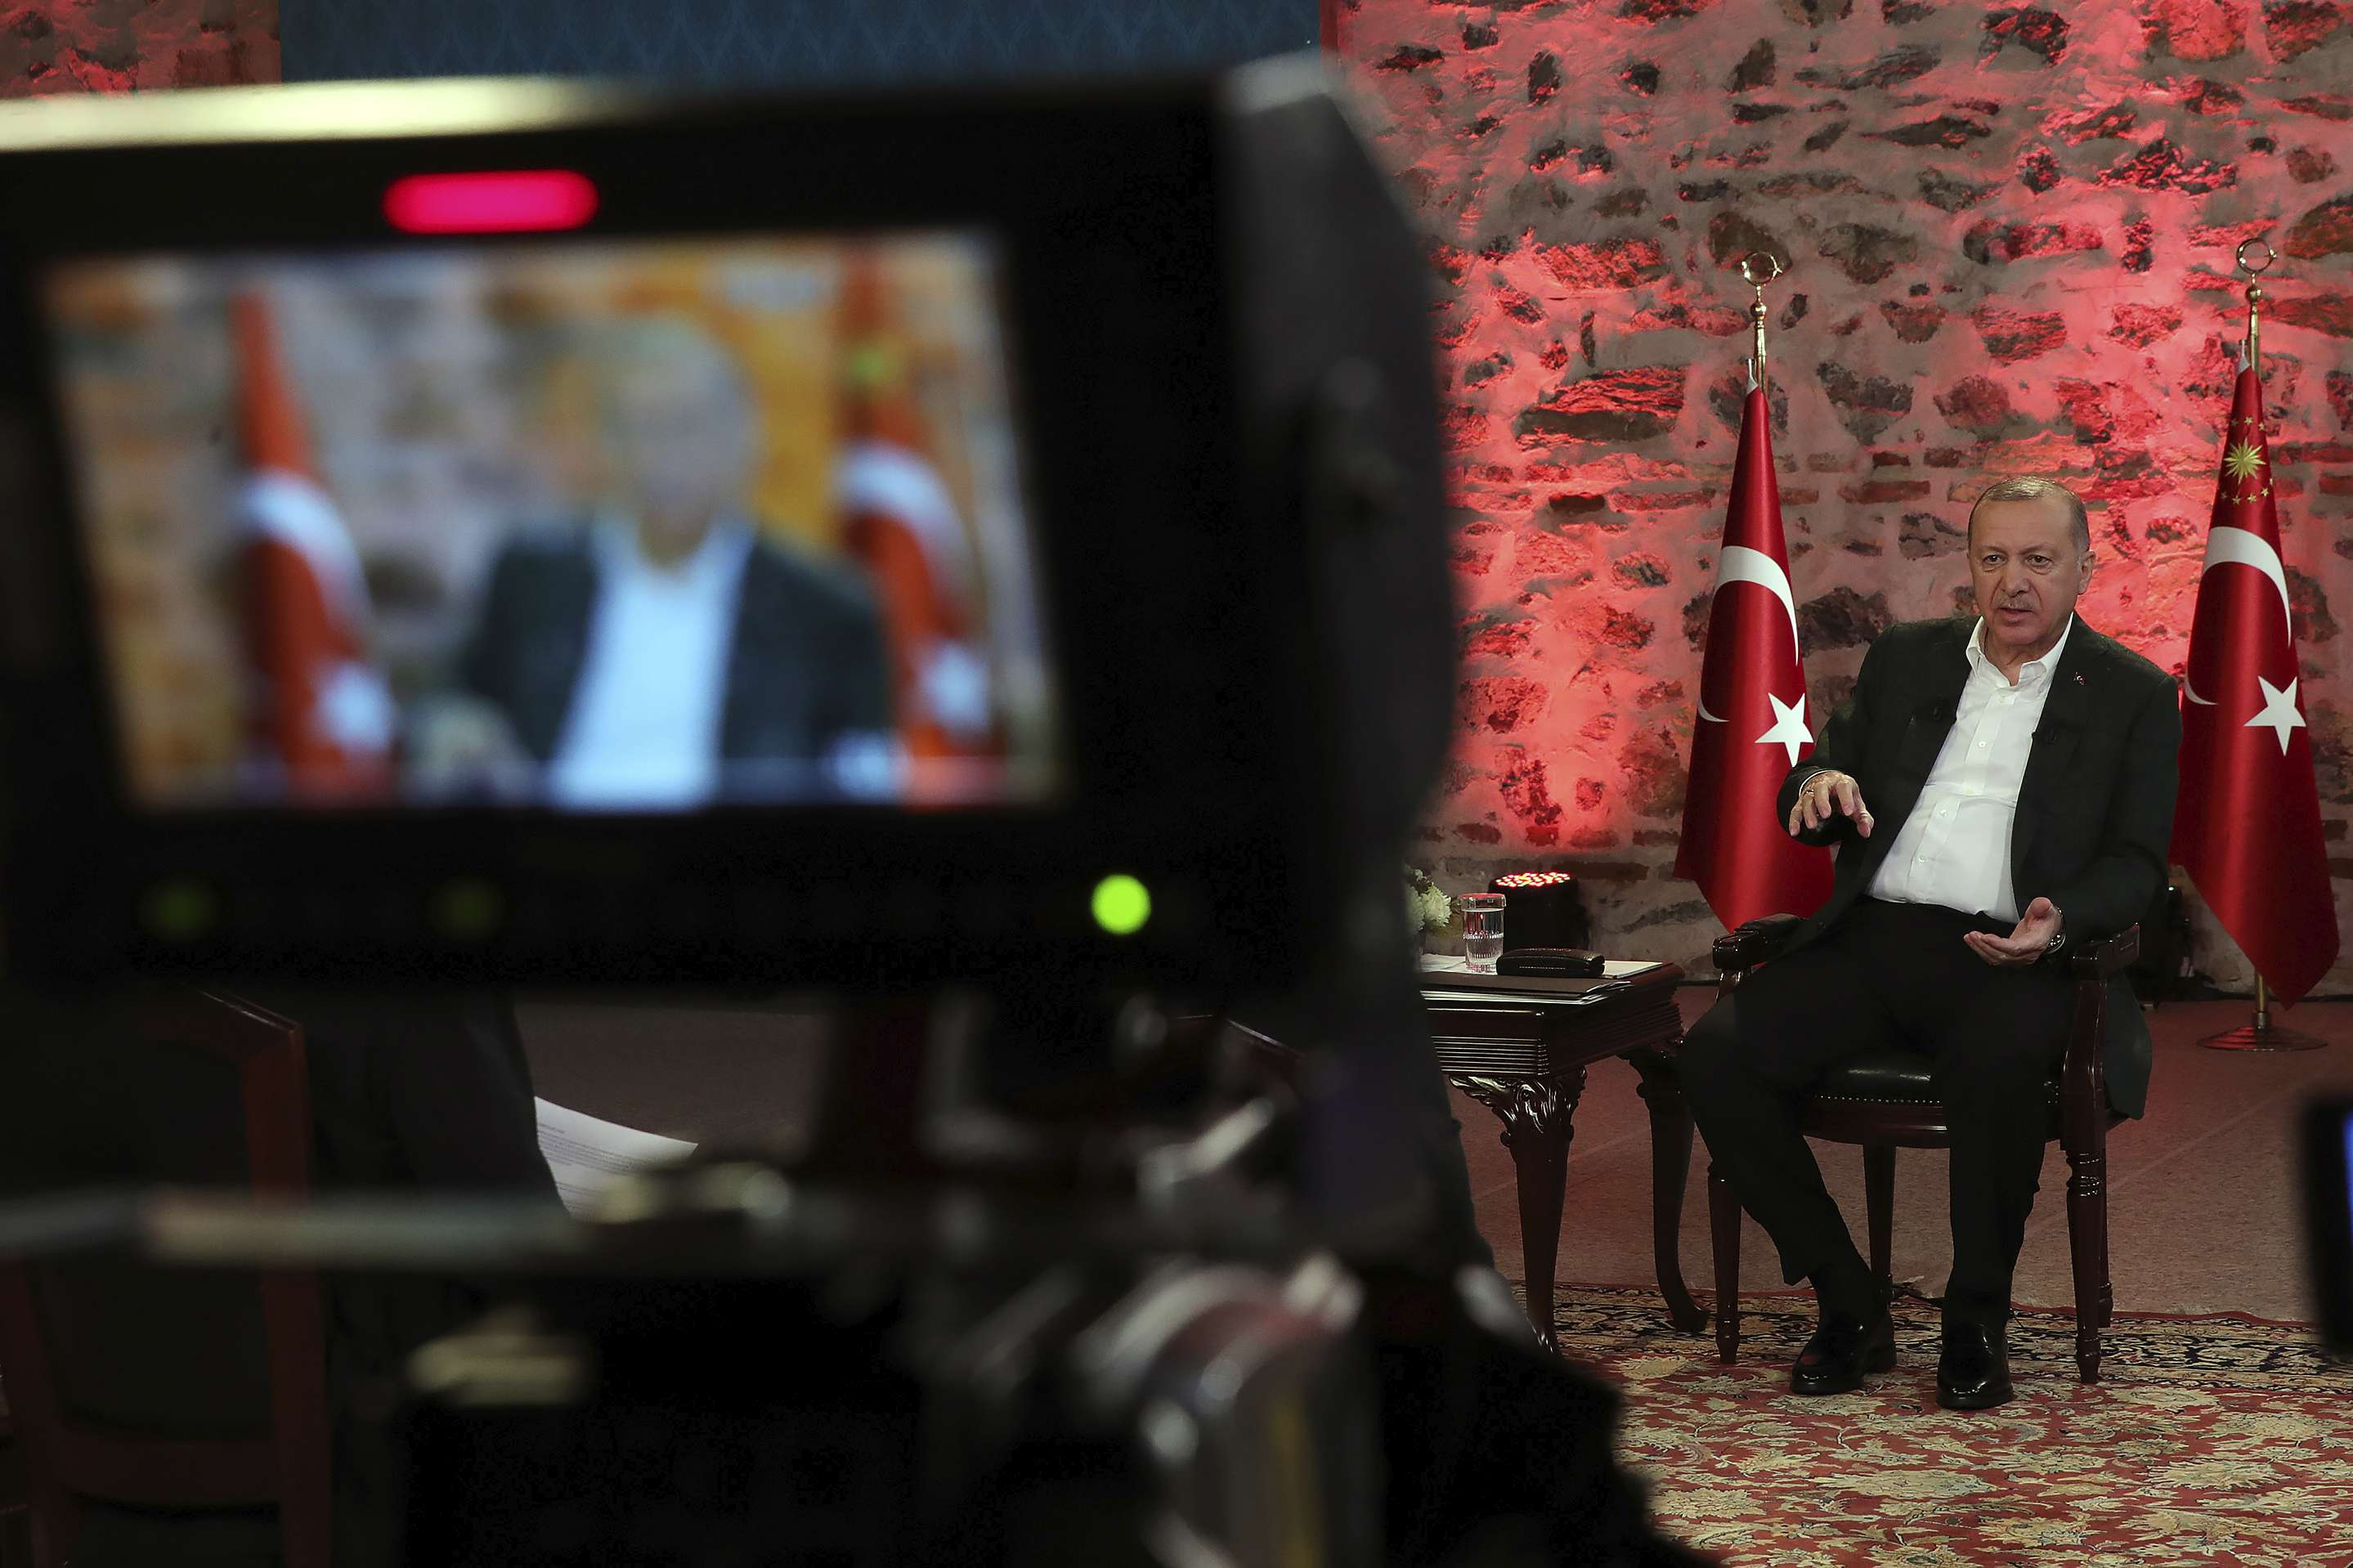 Turkey's President Recep Tayyip Erdogan speaks during a televised interview in Istanbul, January 5. (Turkish Presidential Press Service via AP)